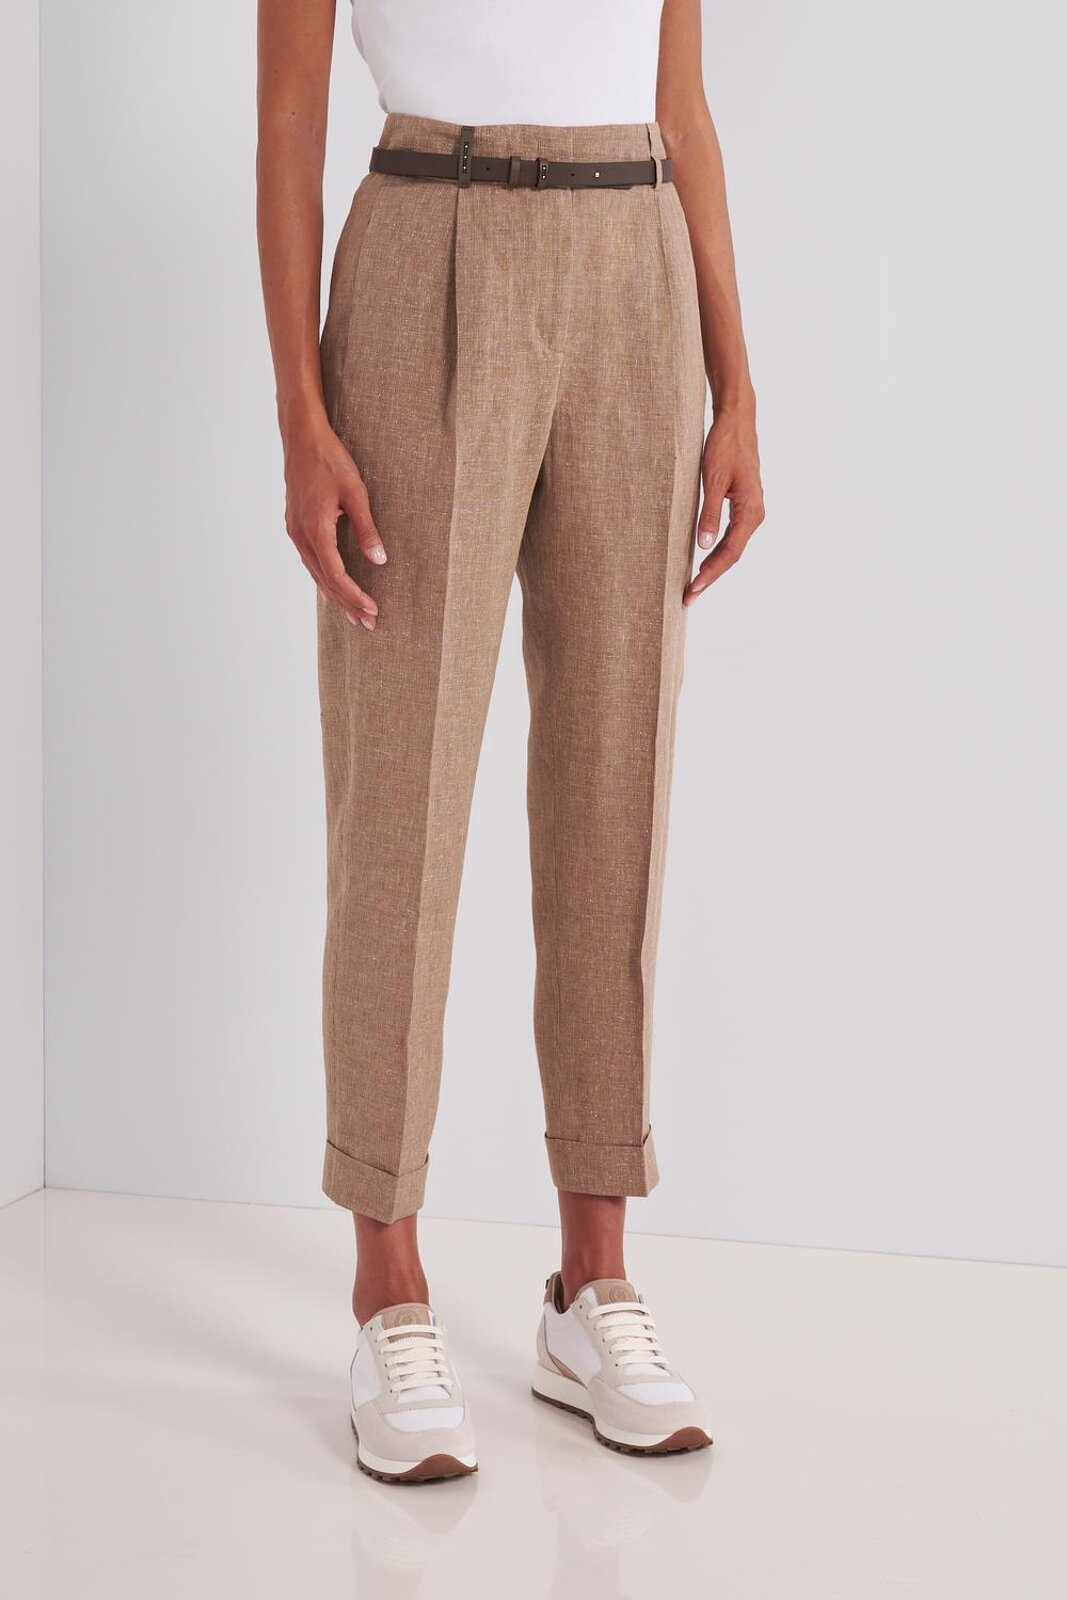 Pure Linen Trousers With Micro Lurex Details. High Waist With Leather Strap Included. Two Side Pockets And Two Rear Welt Pockets. Soft fit. - Peserico